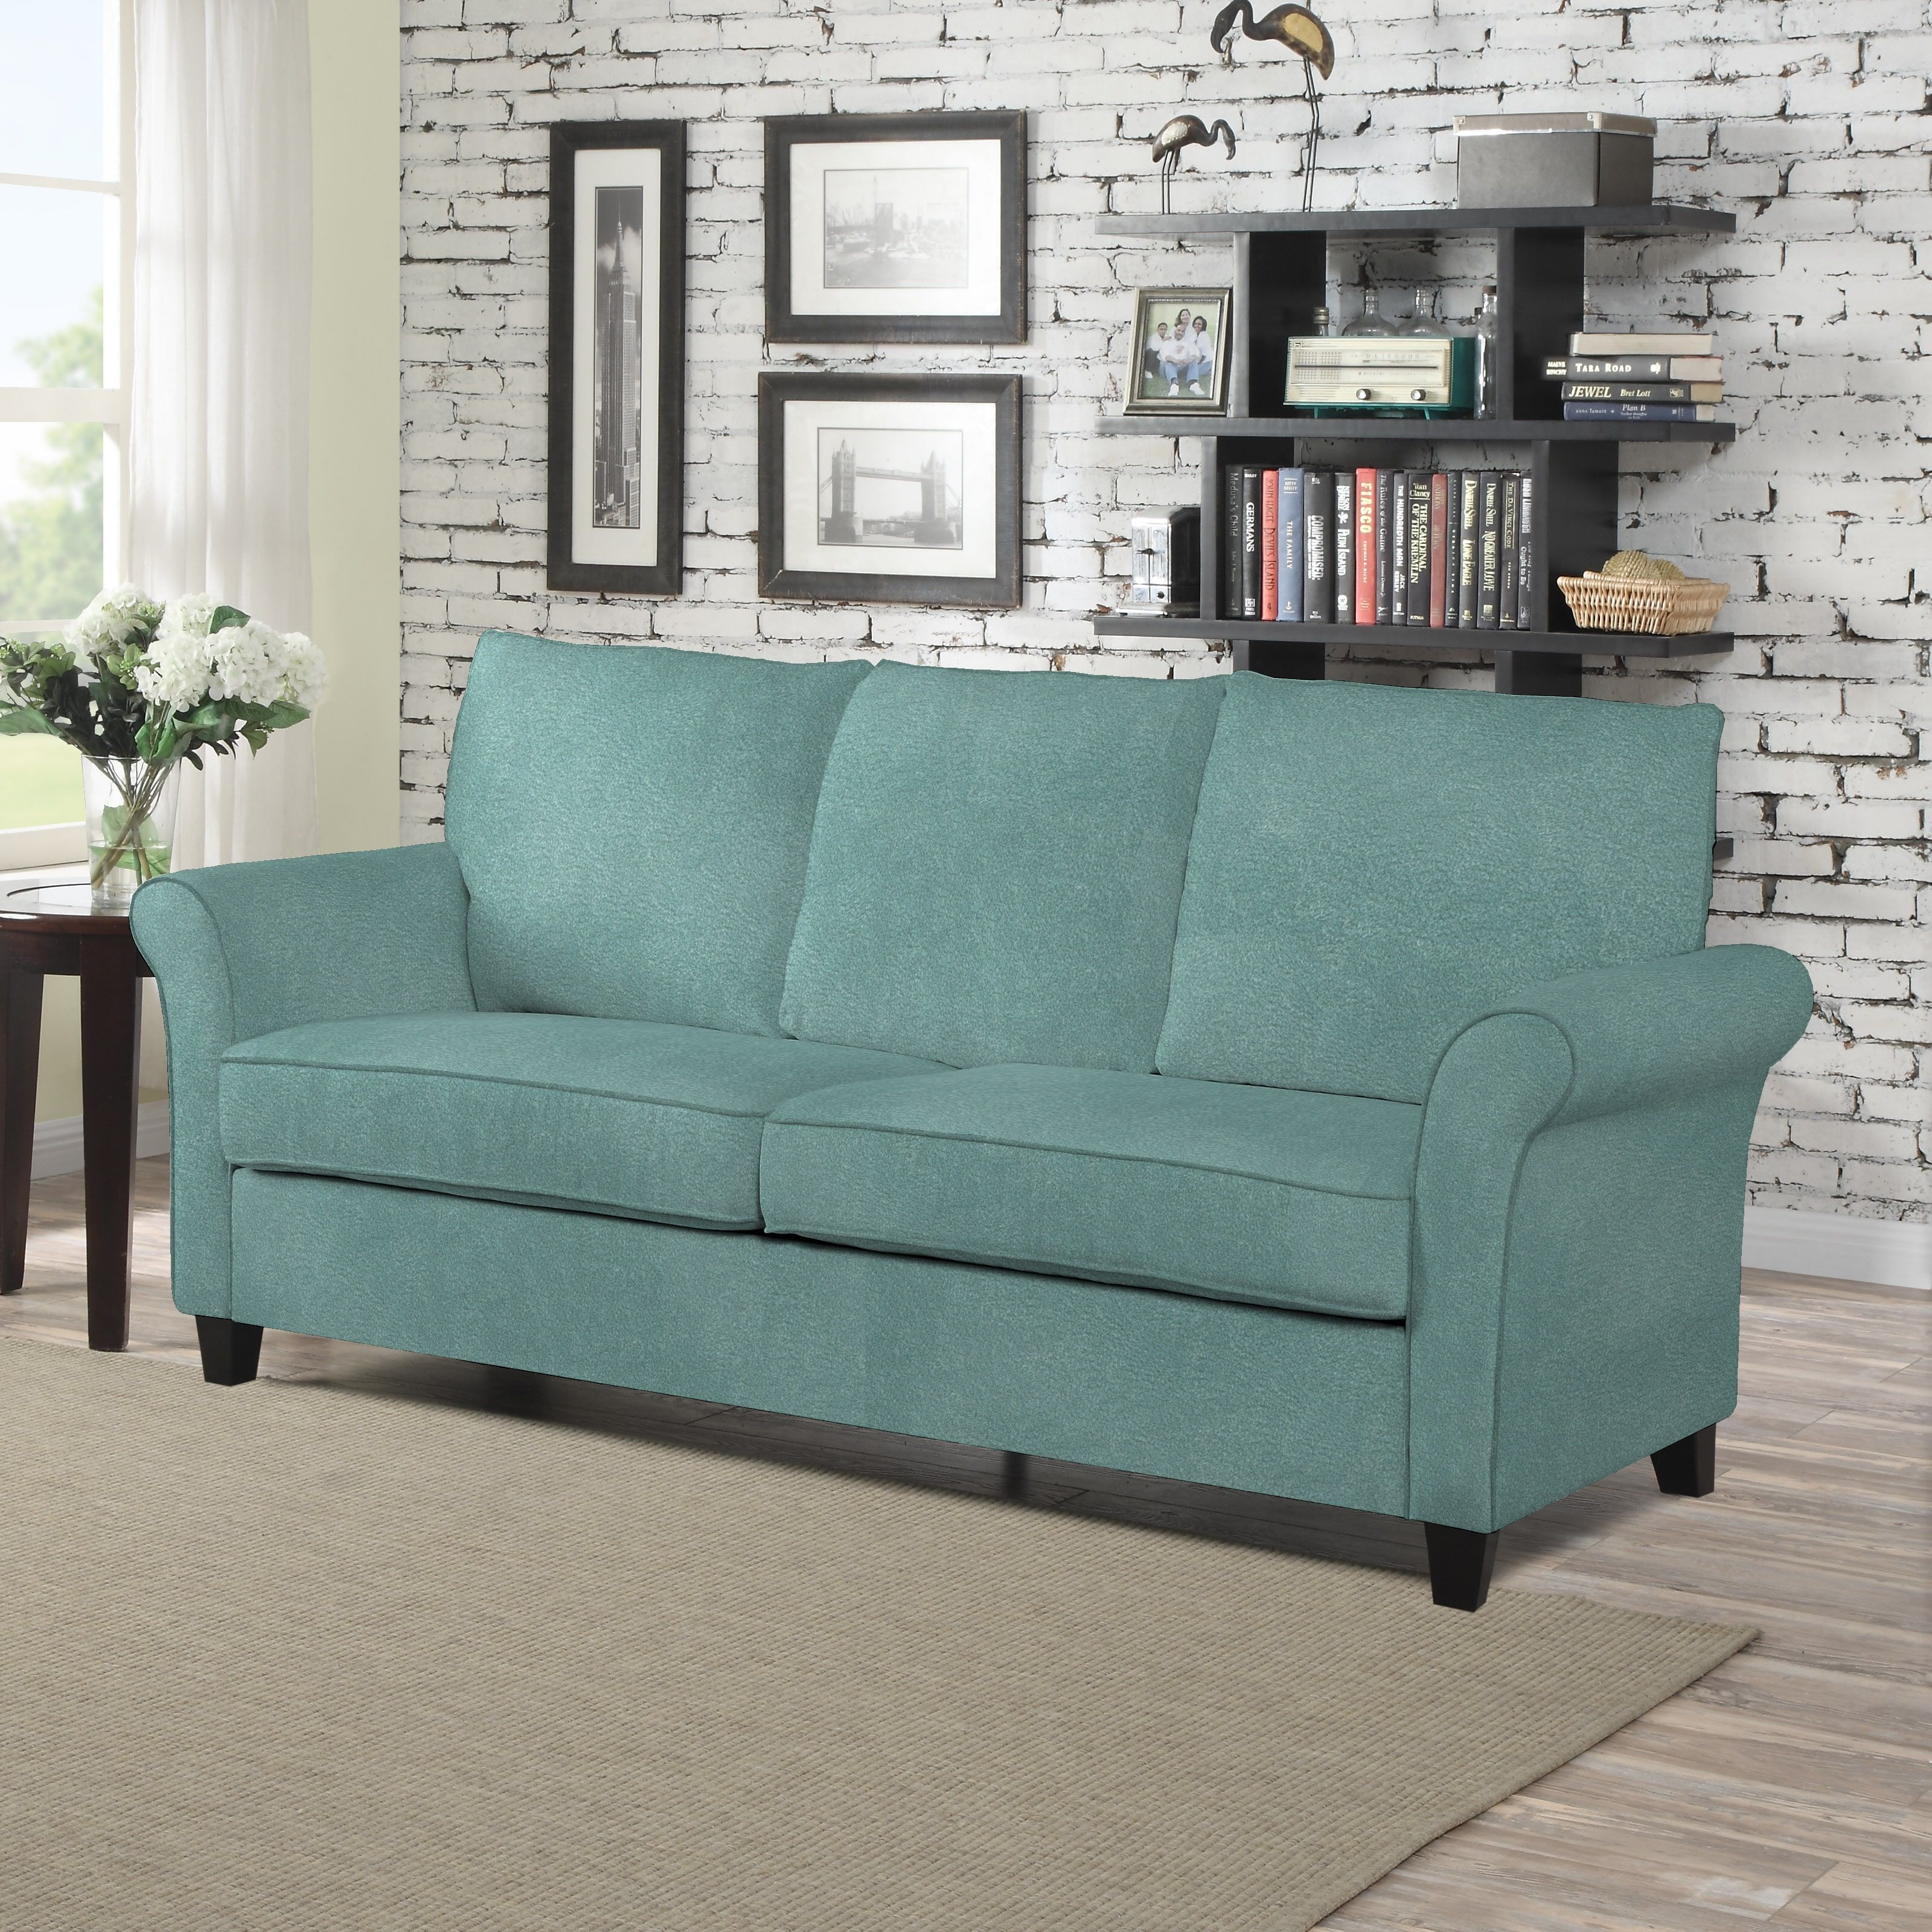 upscale plum leather and sofa loveseat resale gahanna furnishings dark of